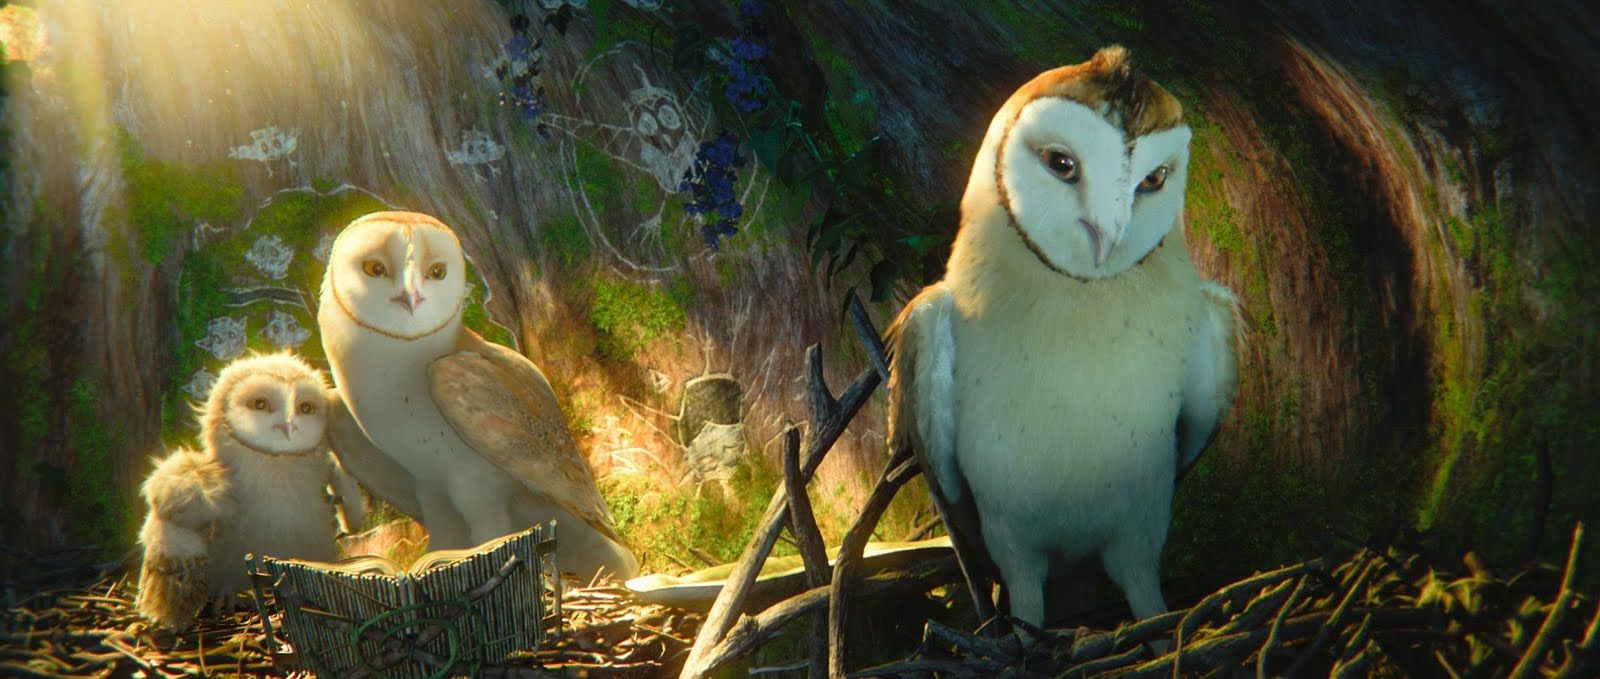 Hộ Vệ Xứ Gahoole - Legend Of The Guardians: The Owls Of Ga&#39hoole